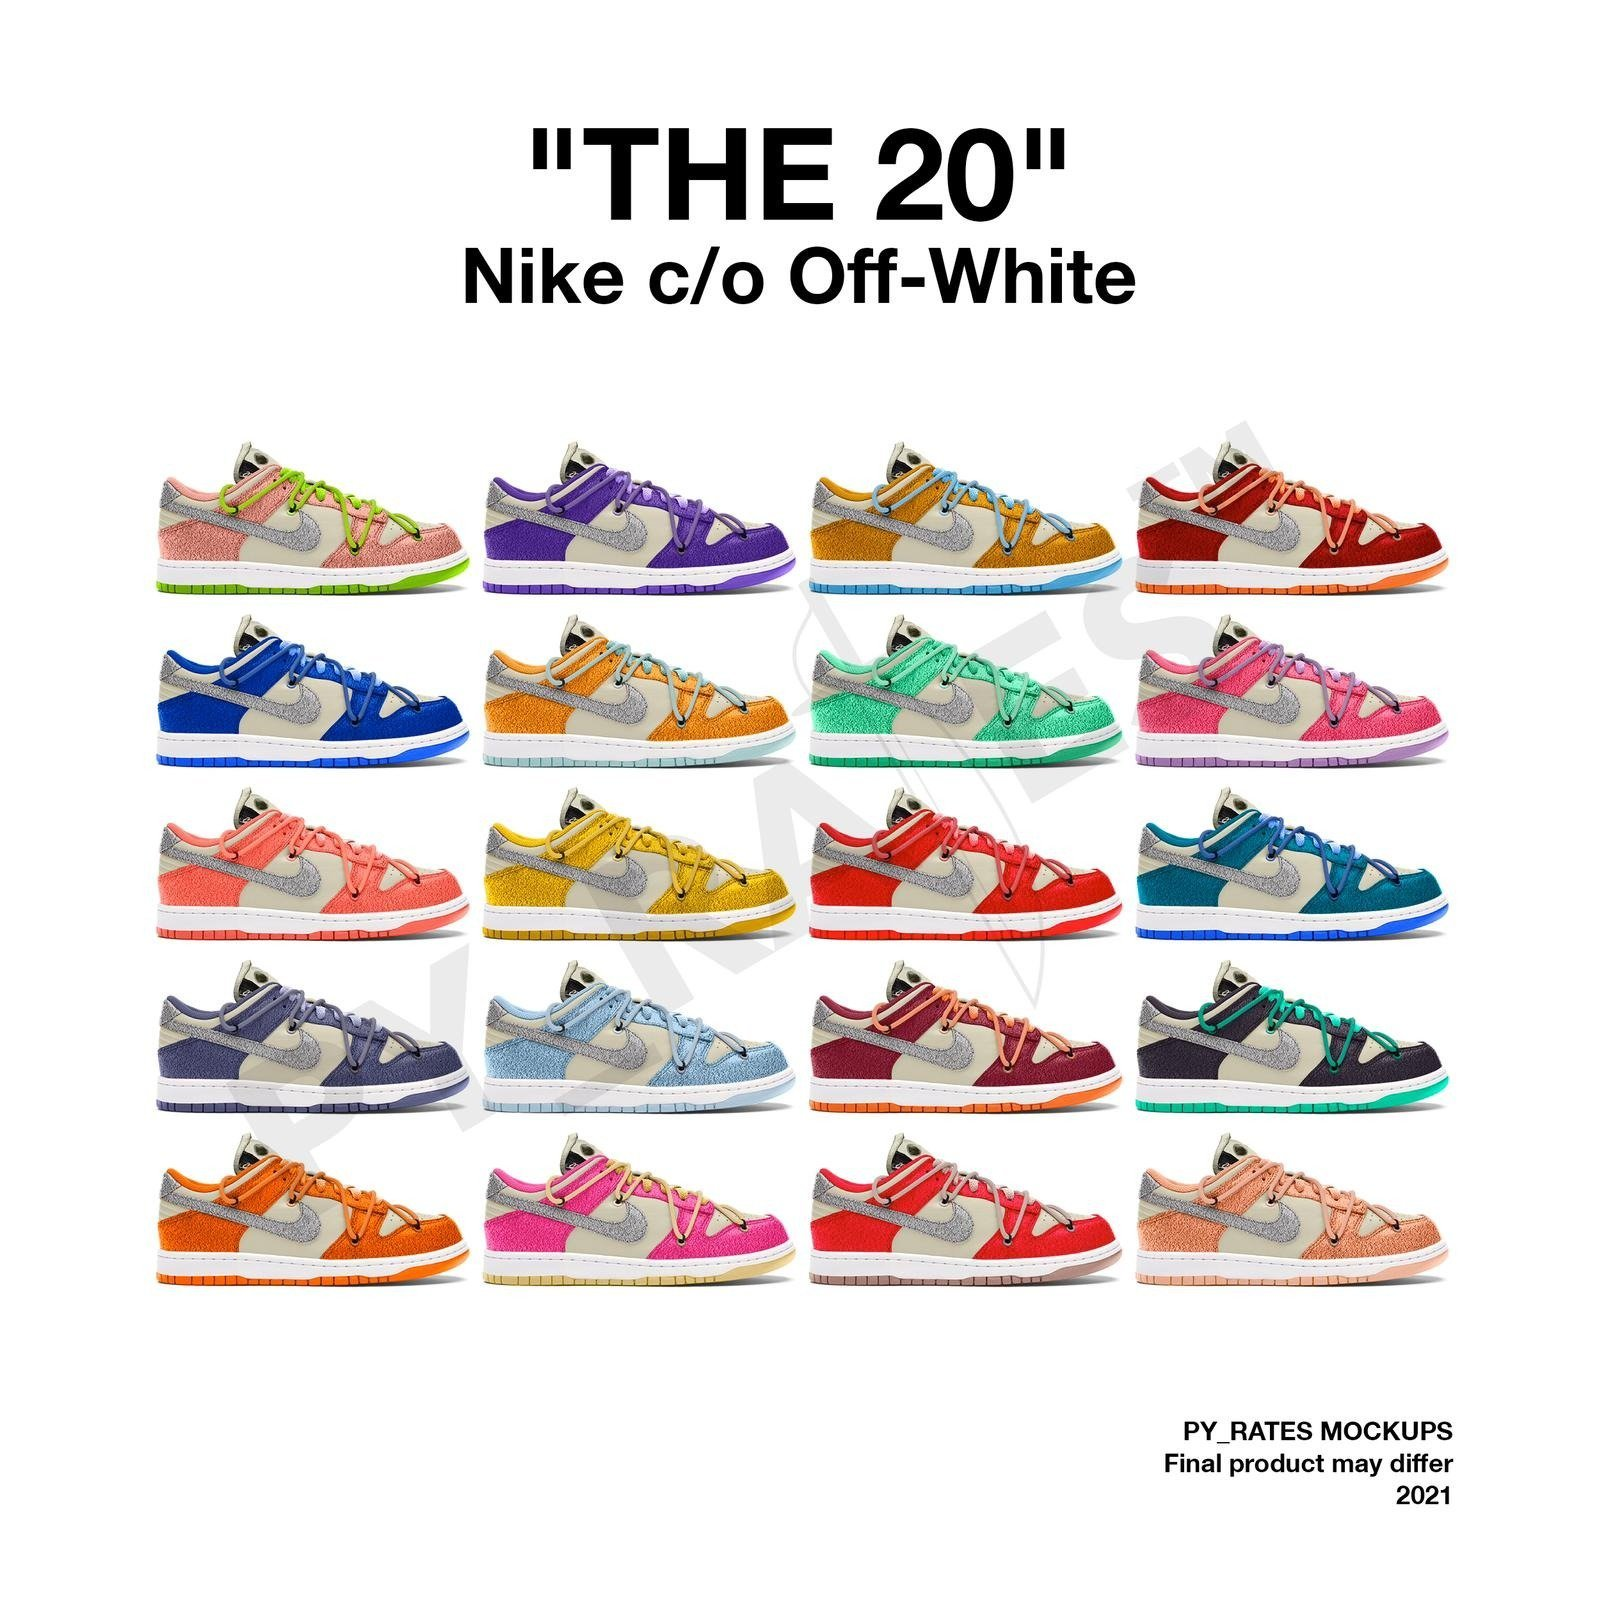 off-white-nike-dunk-low-the-20-color-release-2021-fall